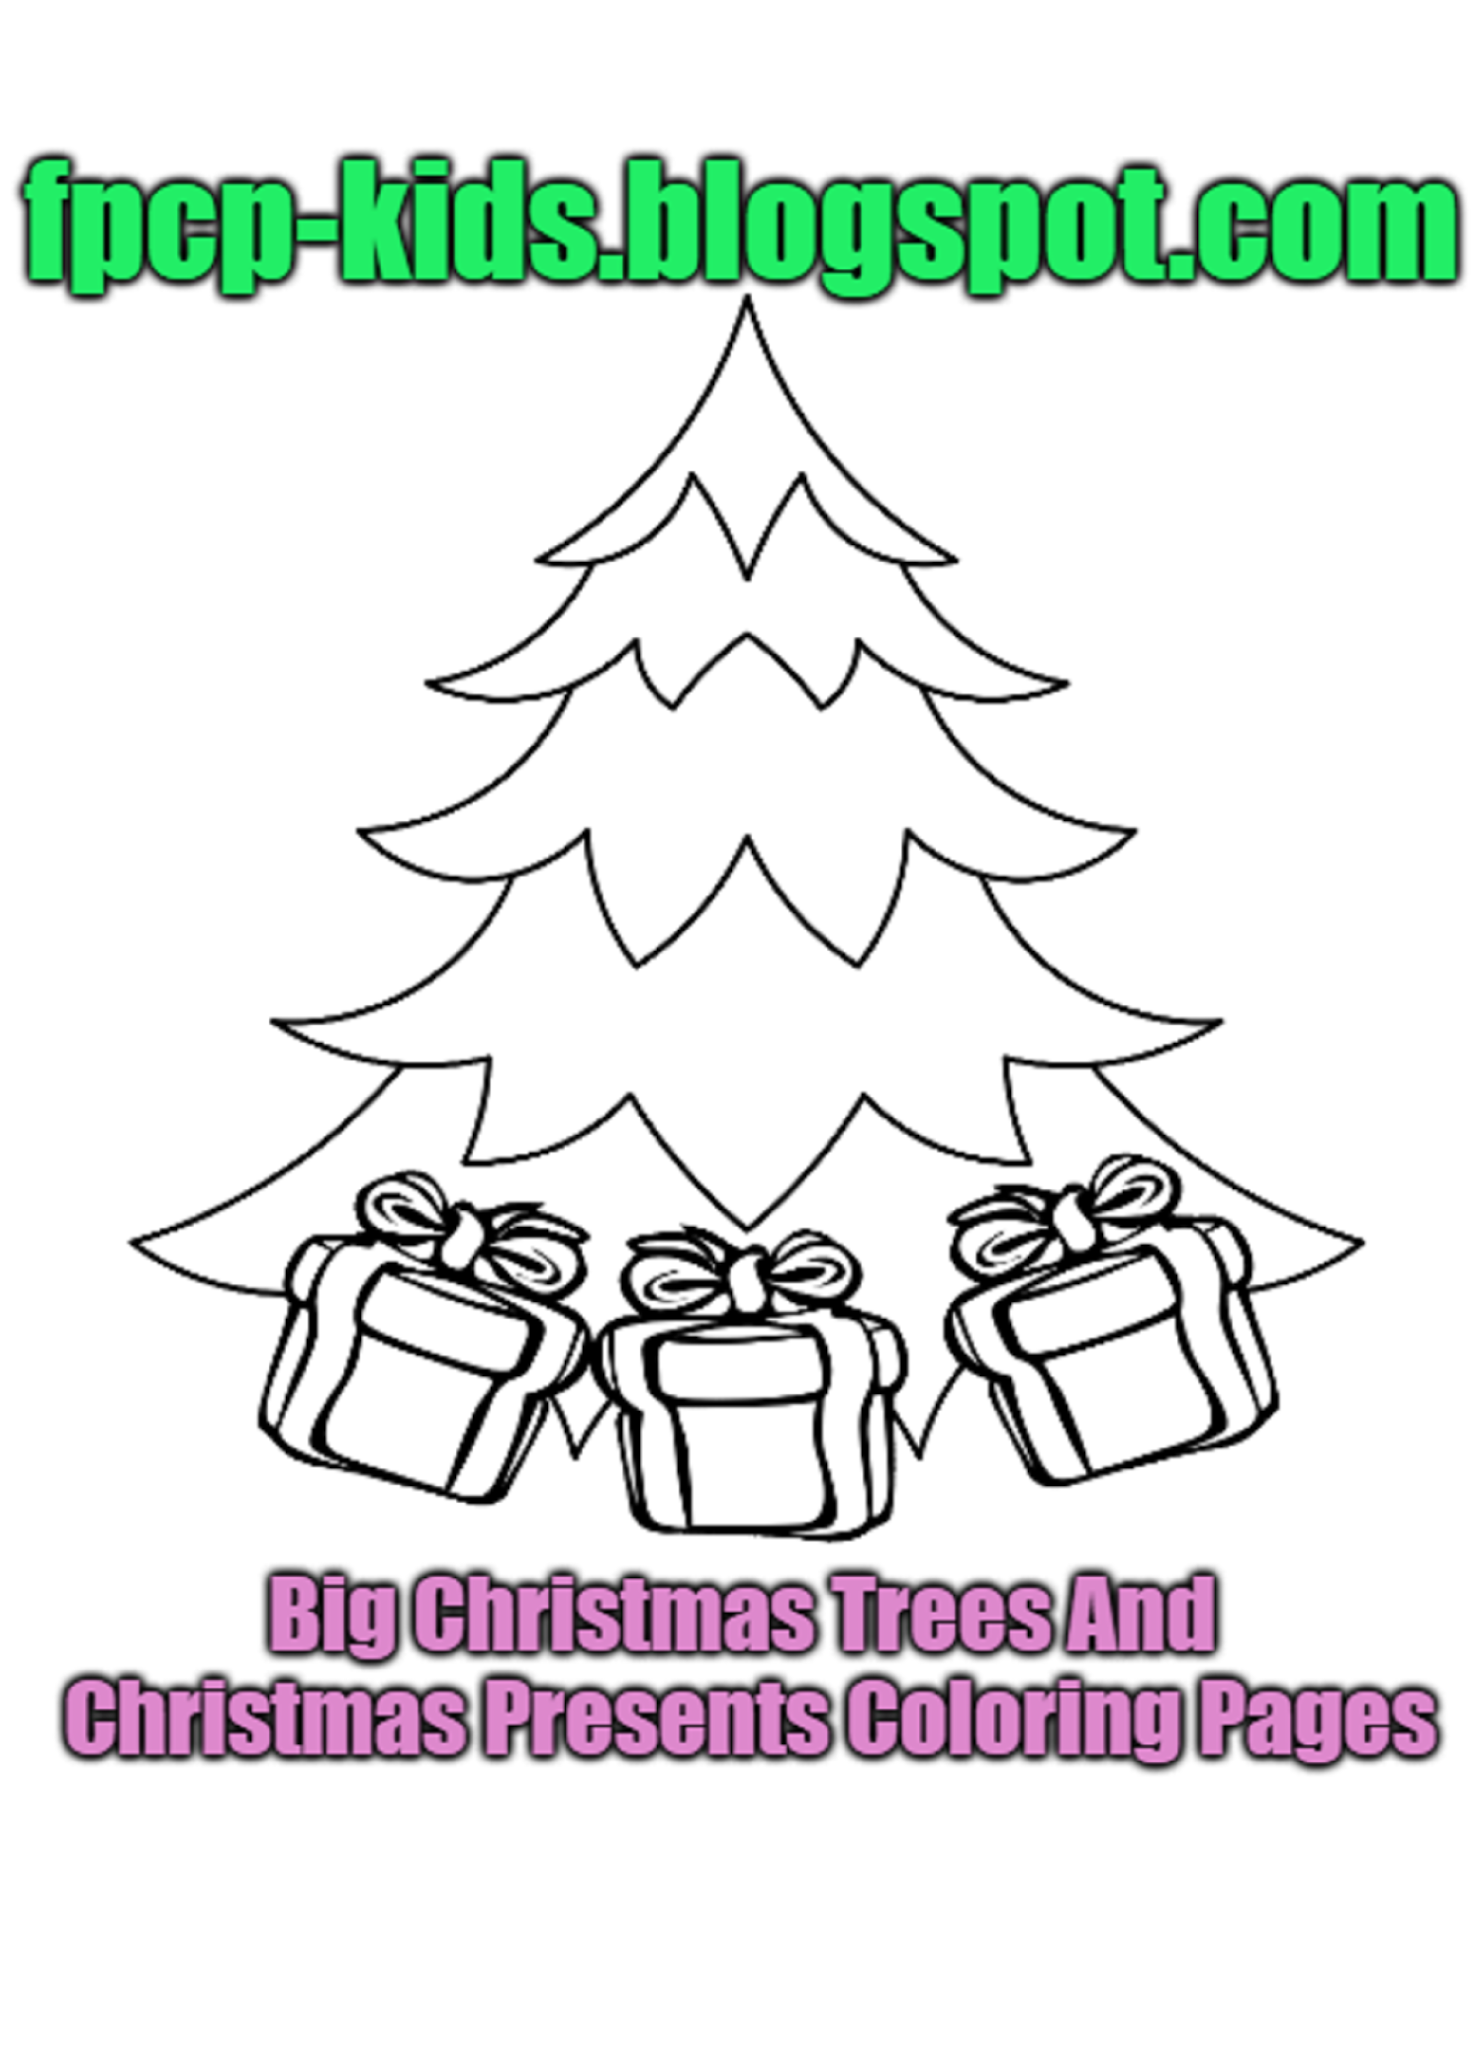 big christmas trees and christmas presents coloring pages christmas trees free printable coloring pages